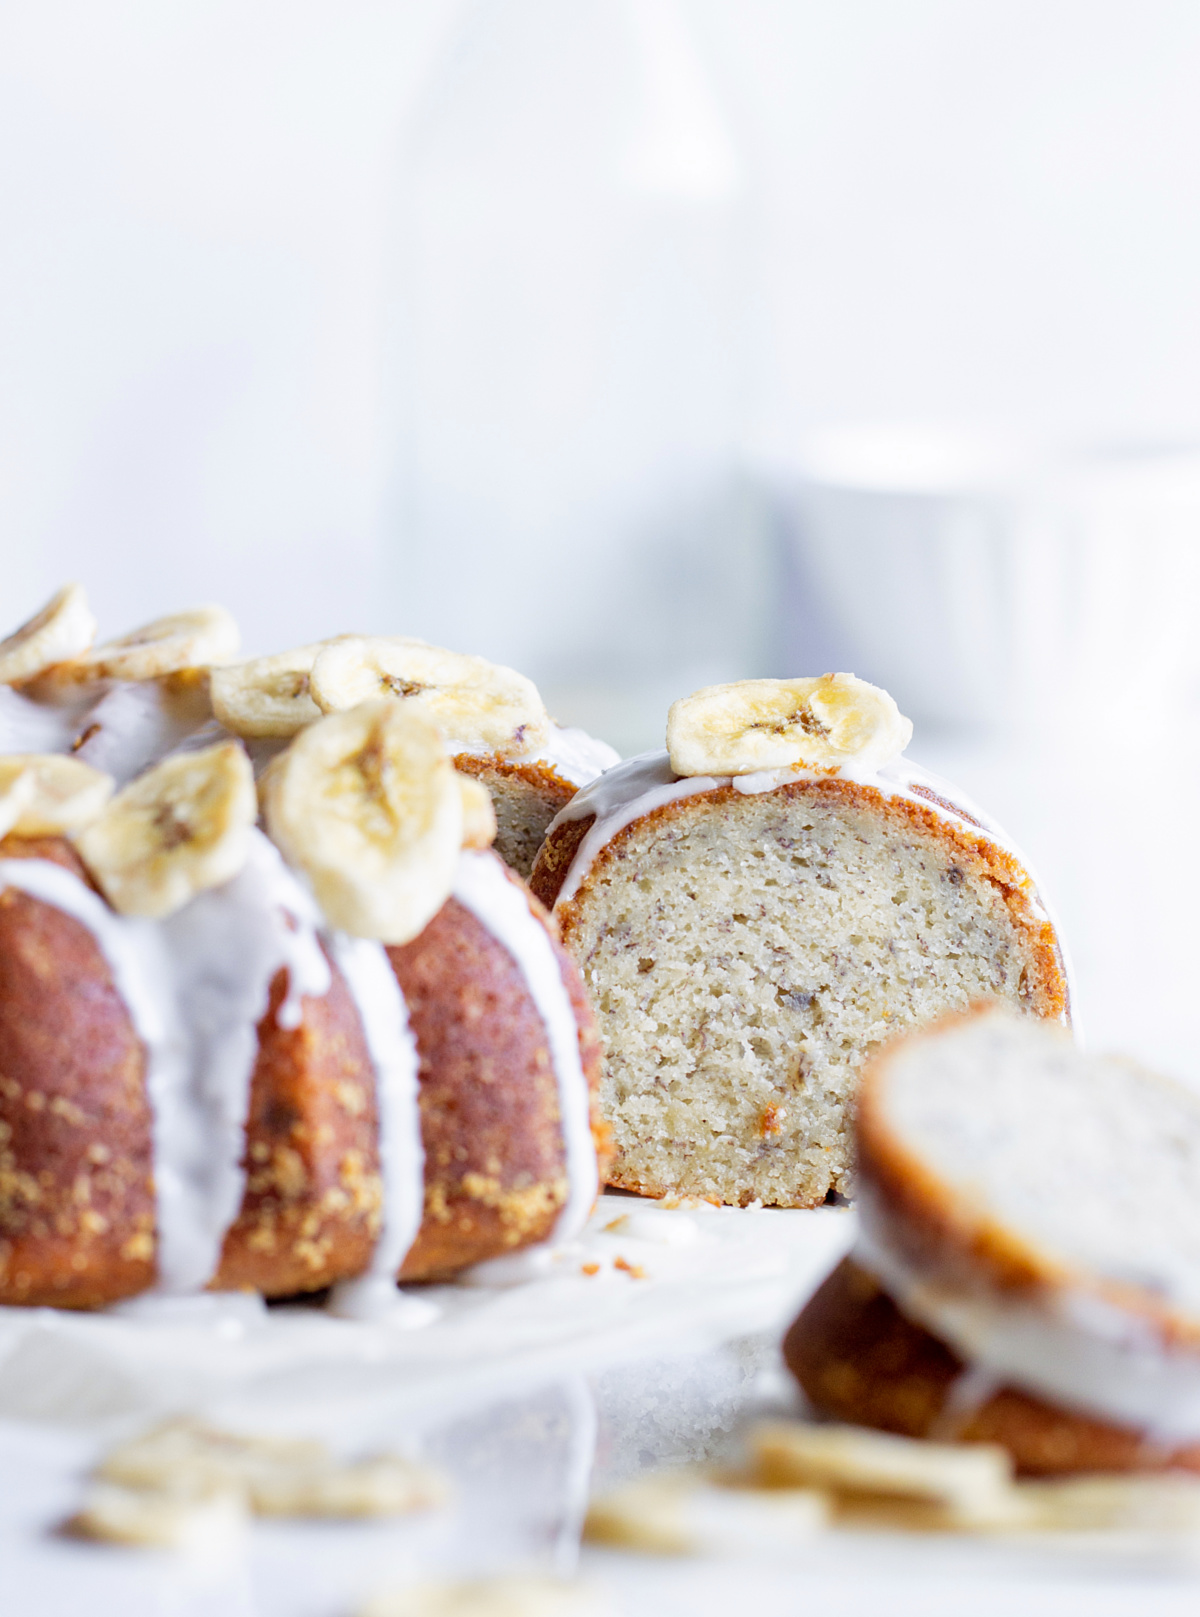 White background with focus on single banana bundt cake slice and blurred rest of cake